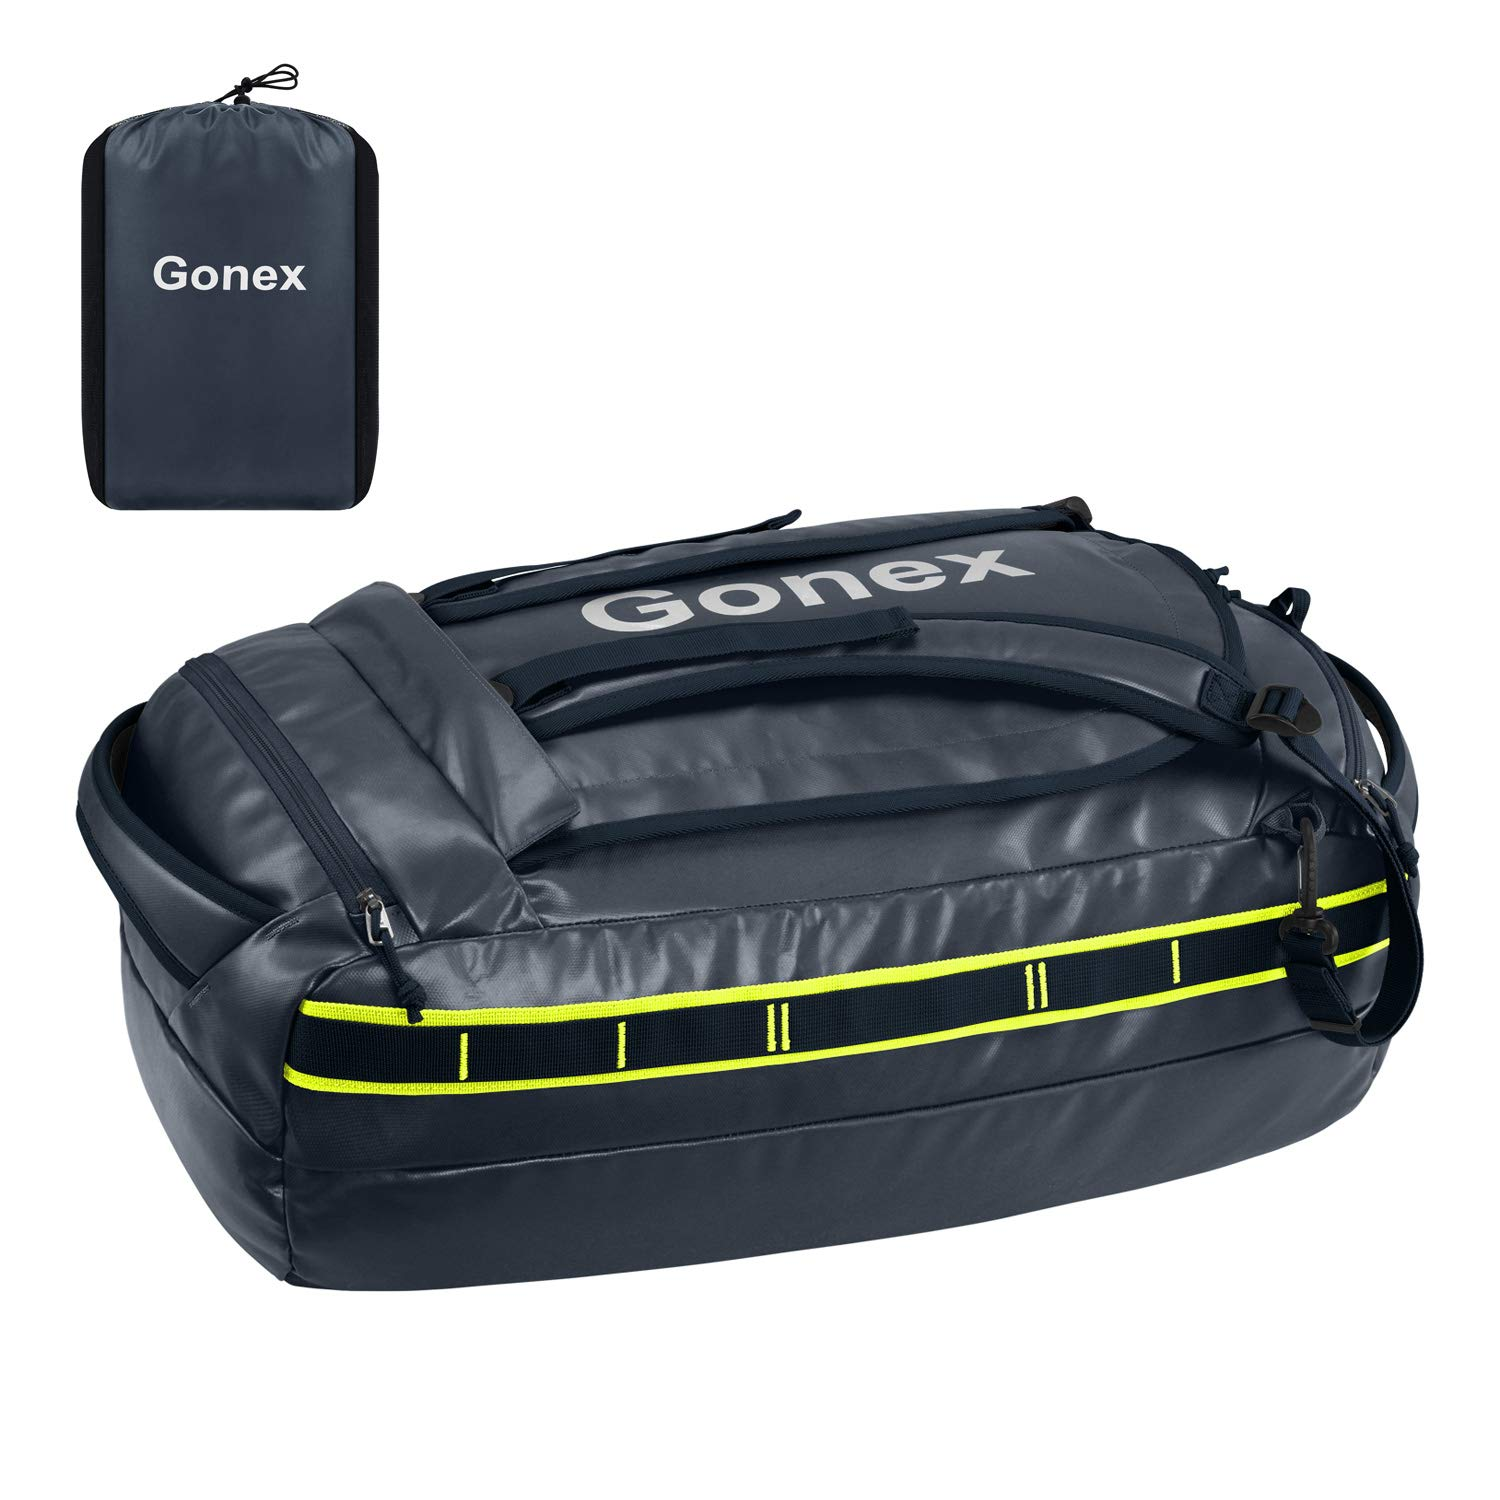 Gonex 60L Waterproof Duffel Outdoor Heavy Duty Duffle Bag with Backpack Straps for Hiking Camping Travelling Cycling for Men Women Dark Blue by Gonex